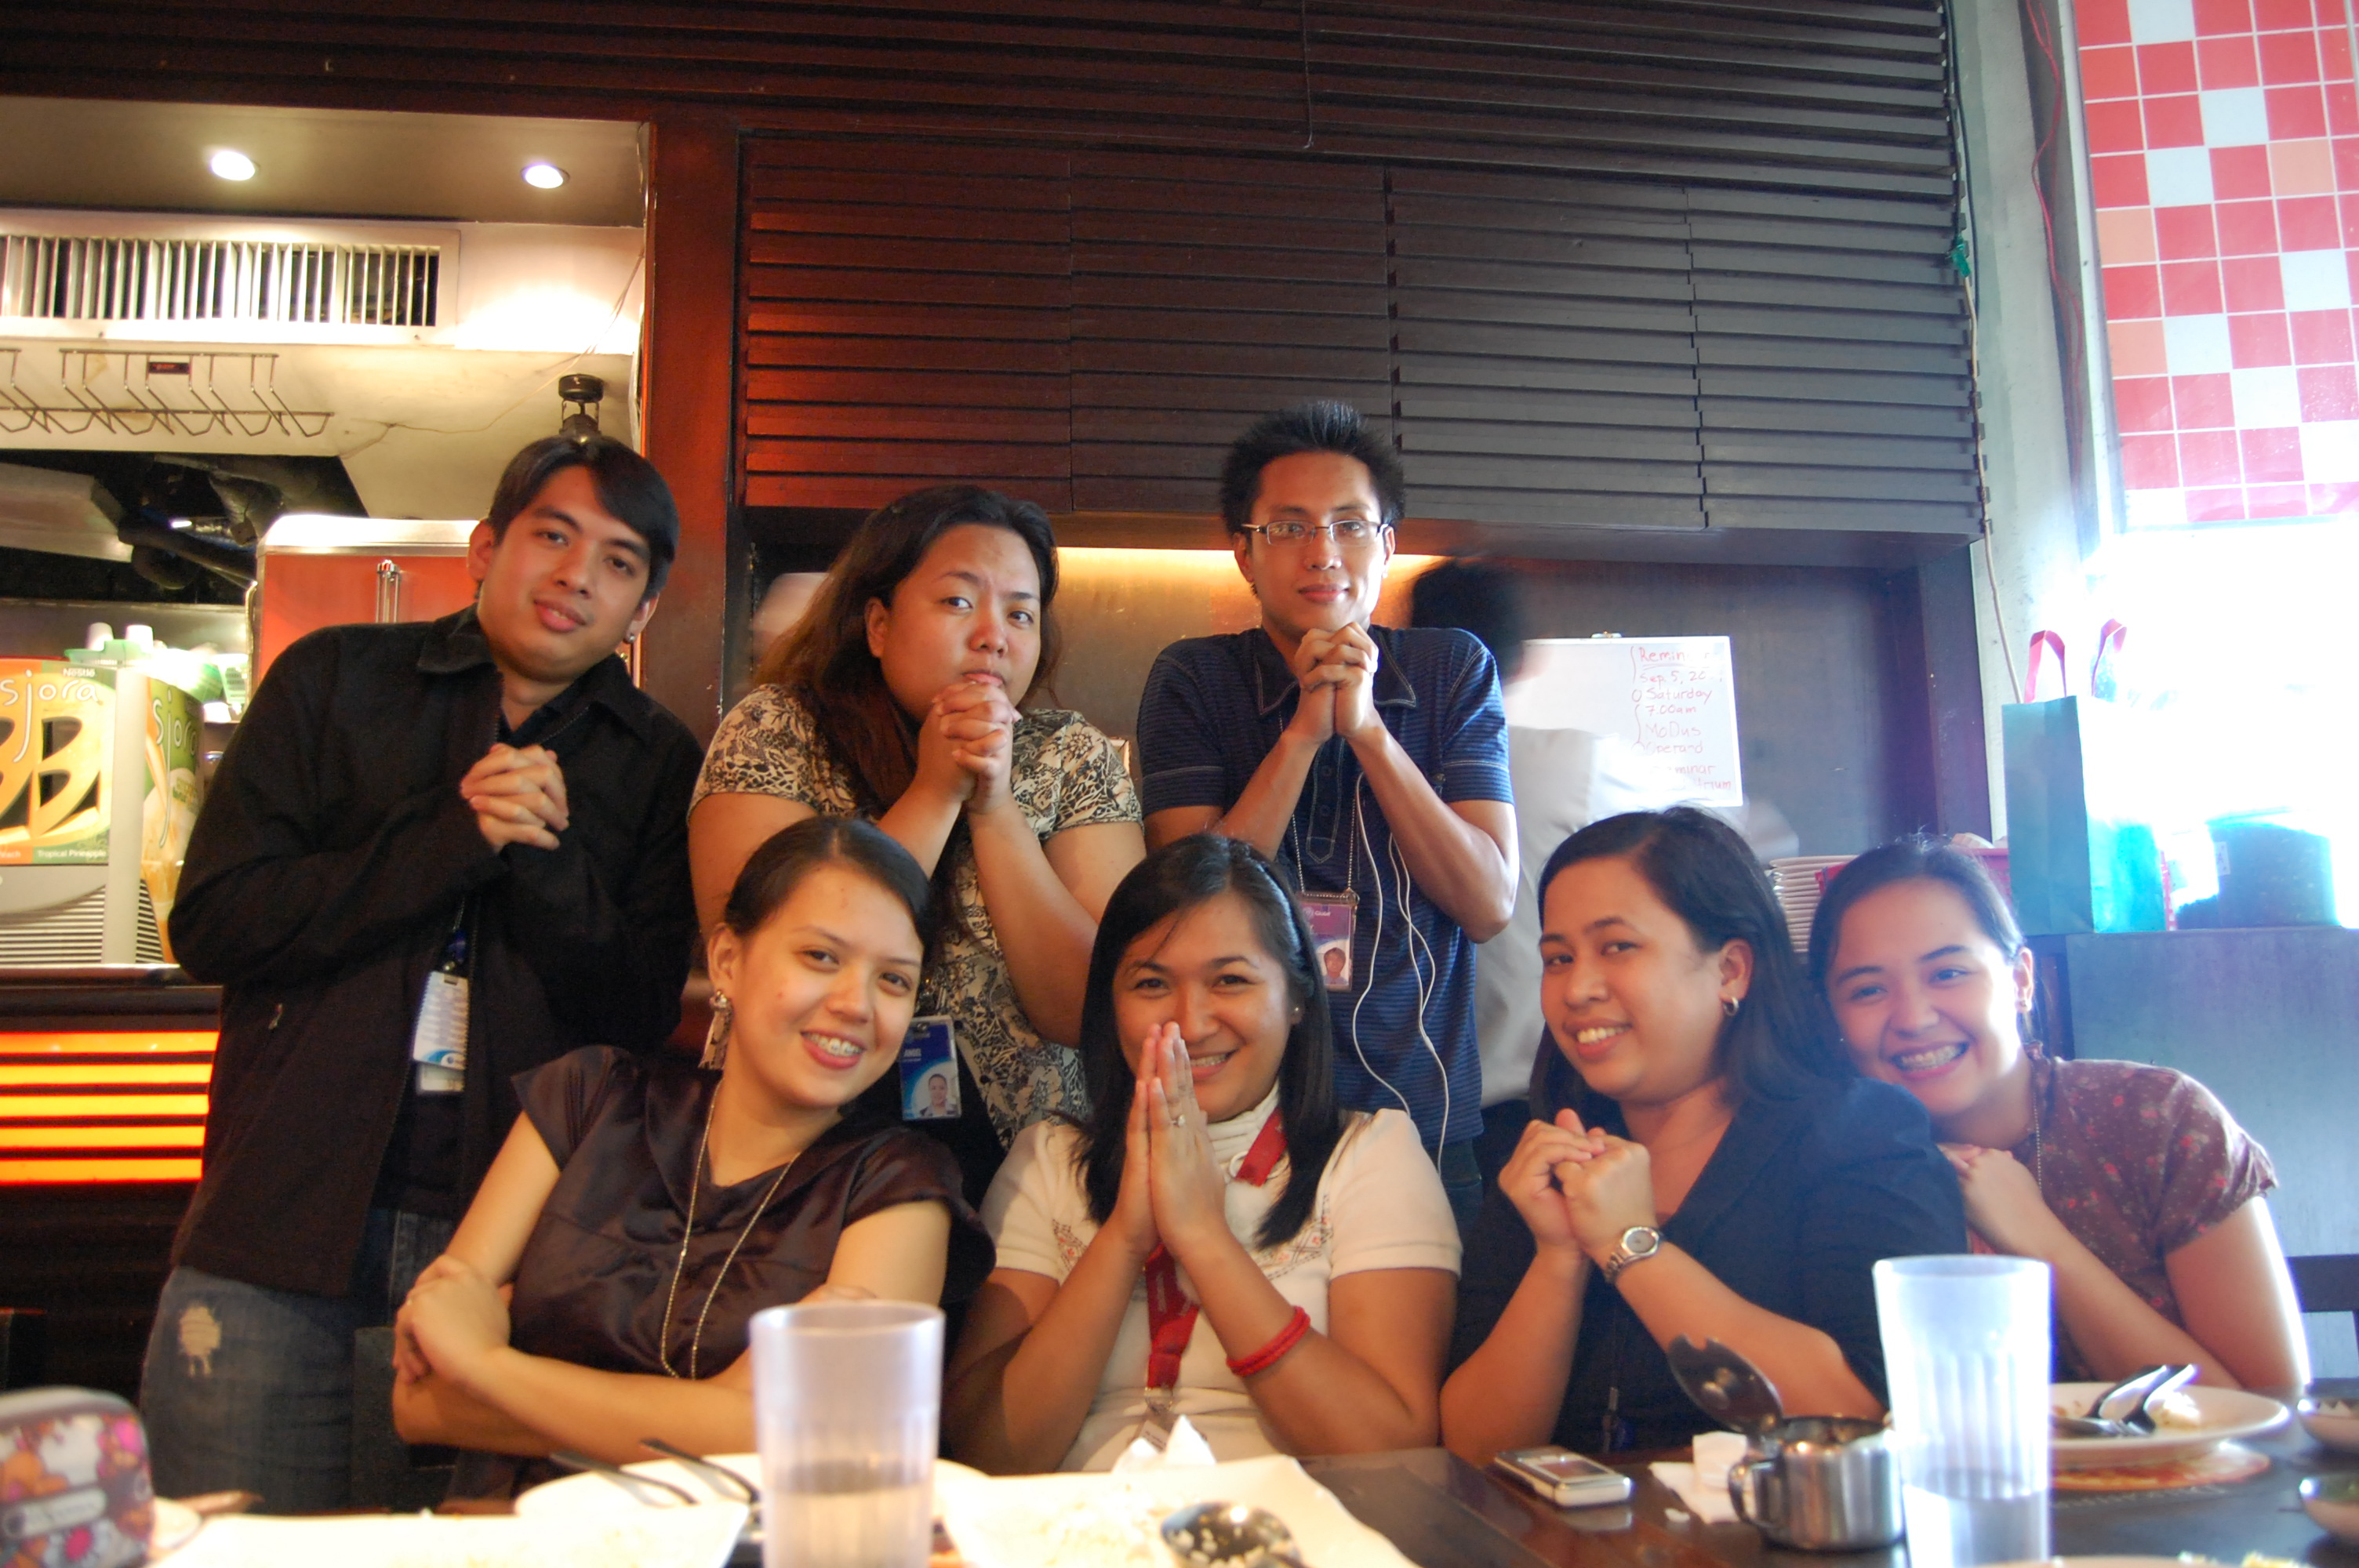 Jay's birthday treat at Mr. Choi (Sep30) We were trying to emulate Athan's ginawin pose. So here's my team, with Jo as Sarah and Dey as Athan. Ahhh good times!